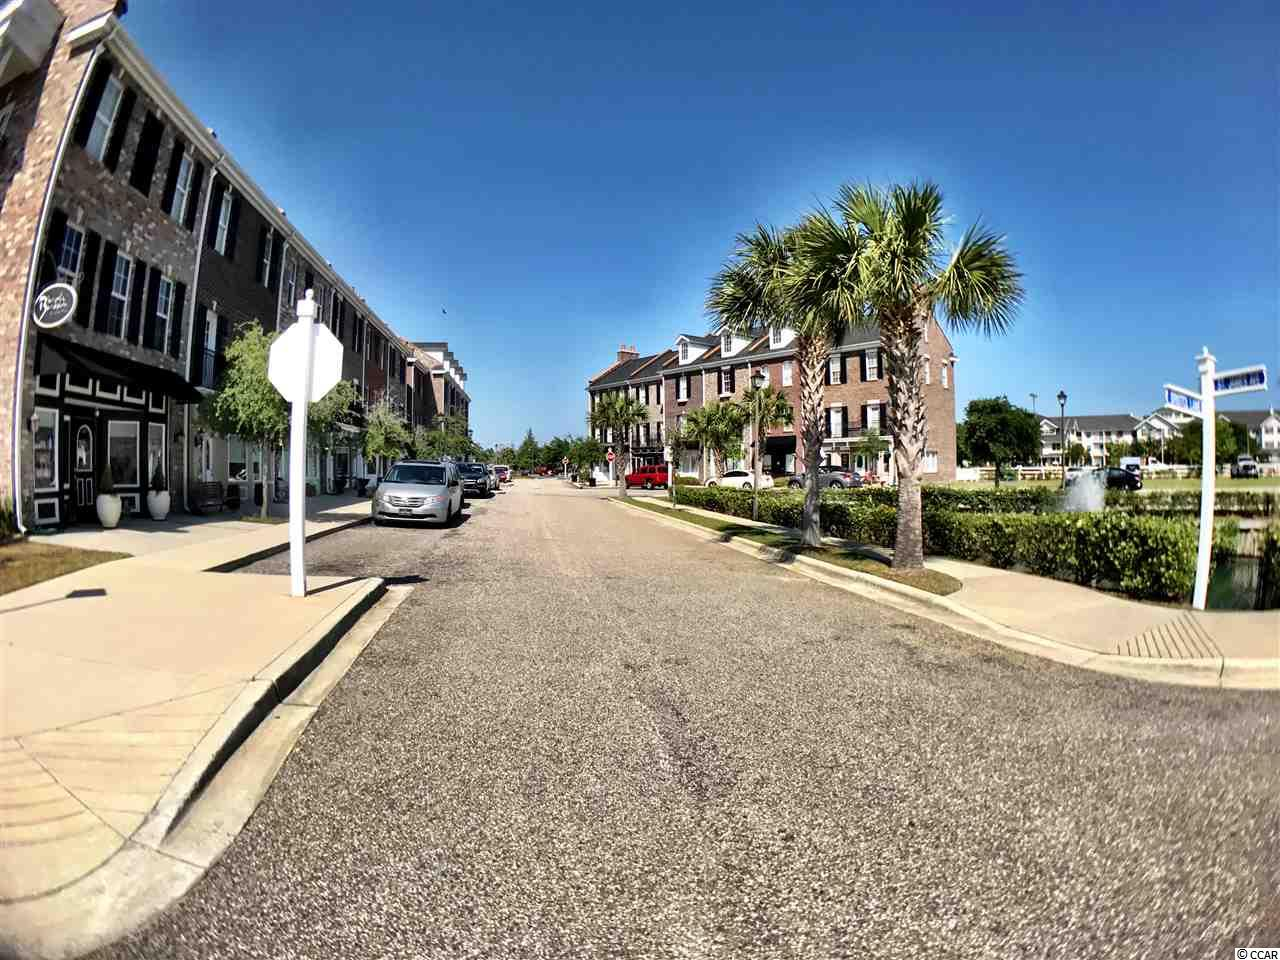 St. James Square - Myrtle Beach condo at 3533 Fountain Lane for sale. 1709427